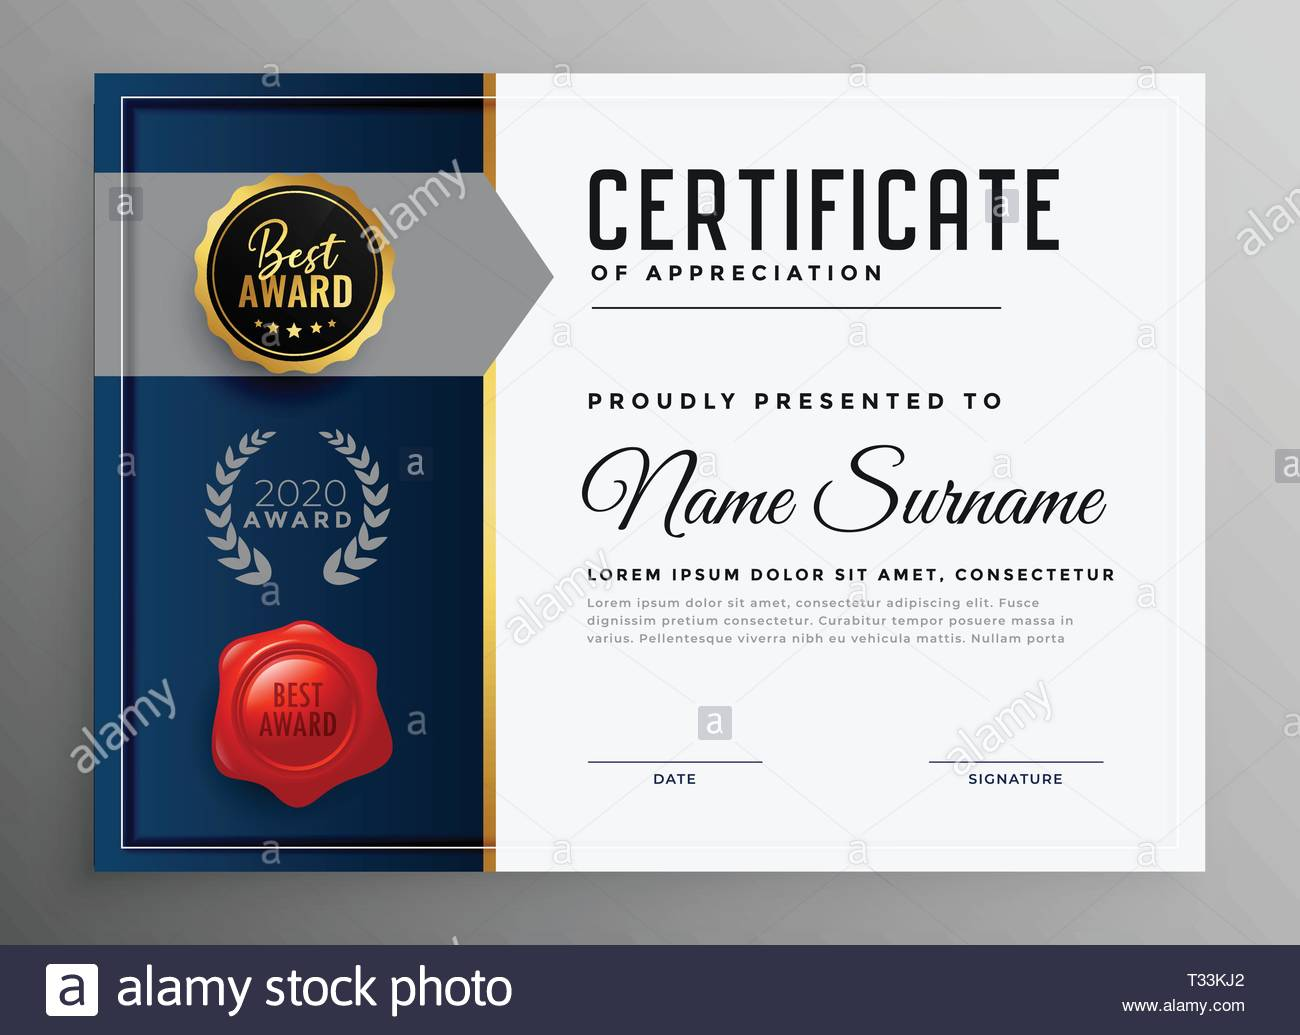 certificate of appreciation template royalty free vector.html